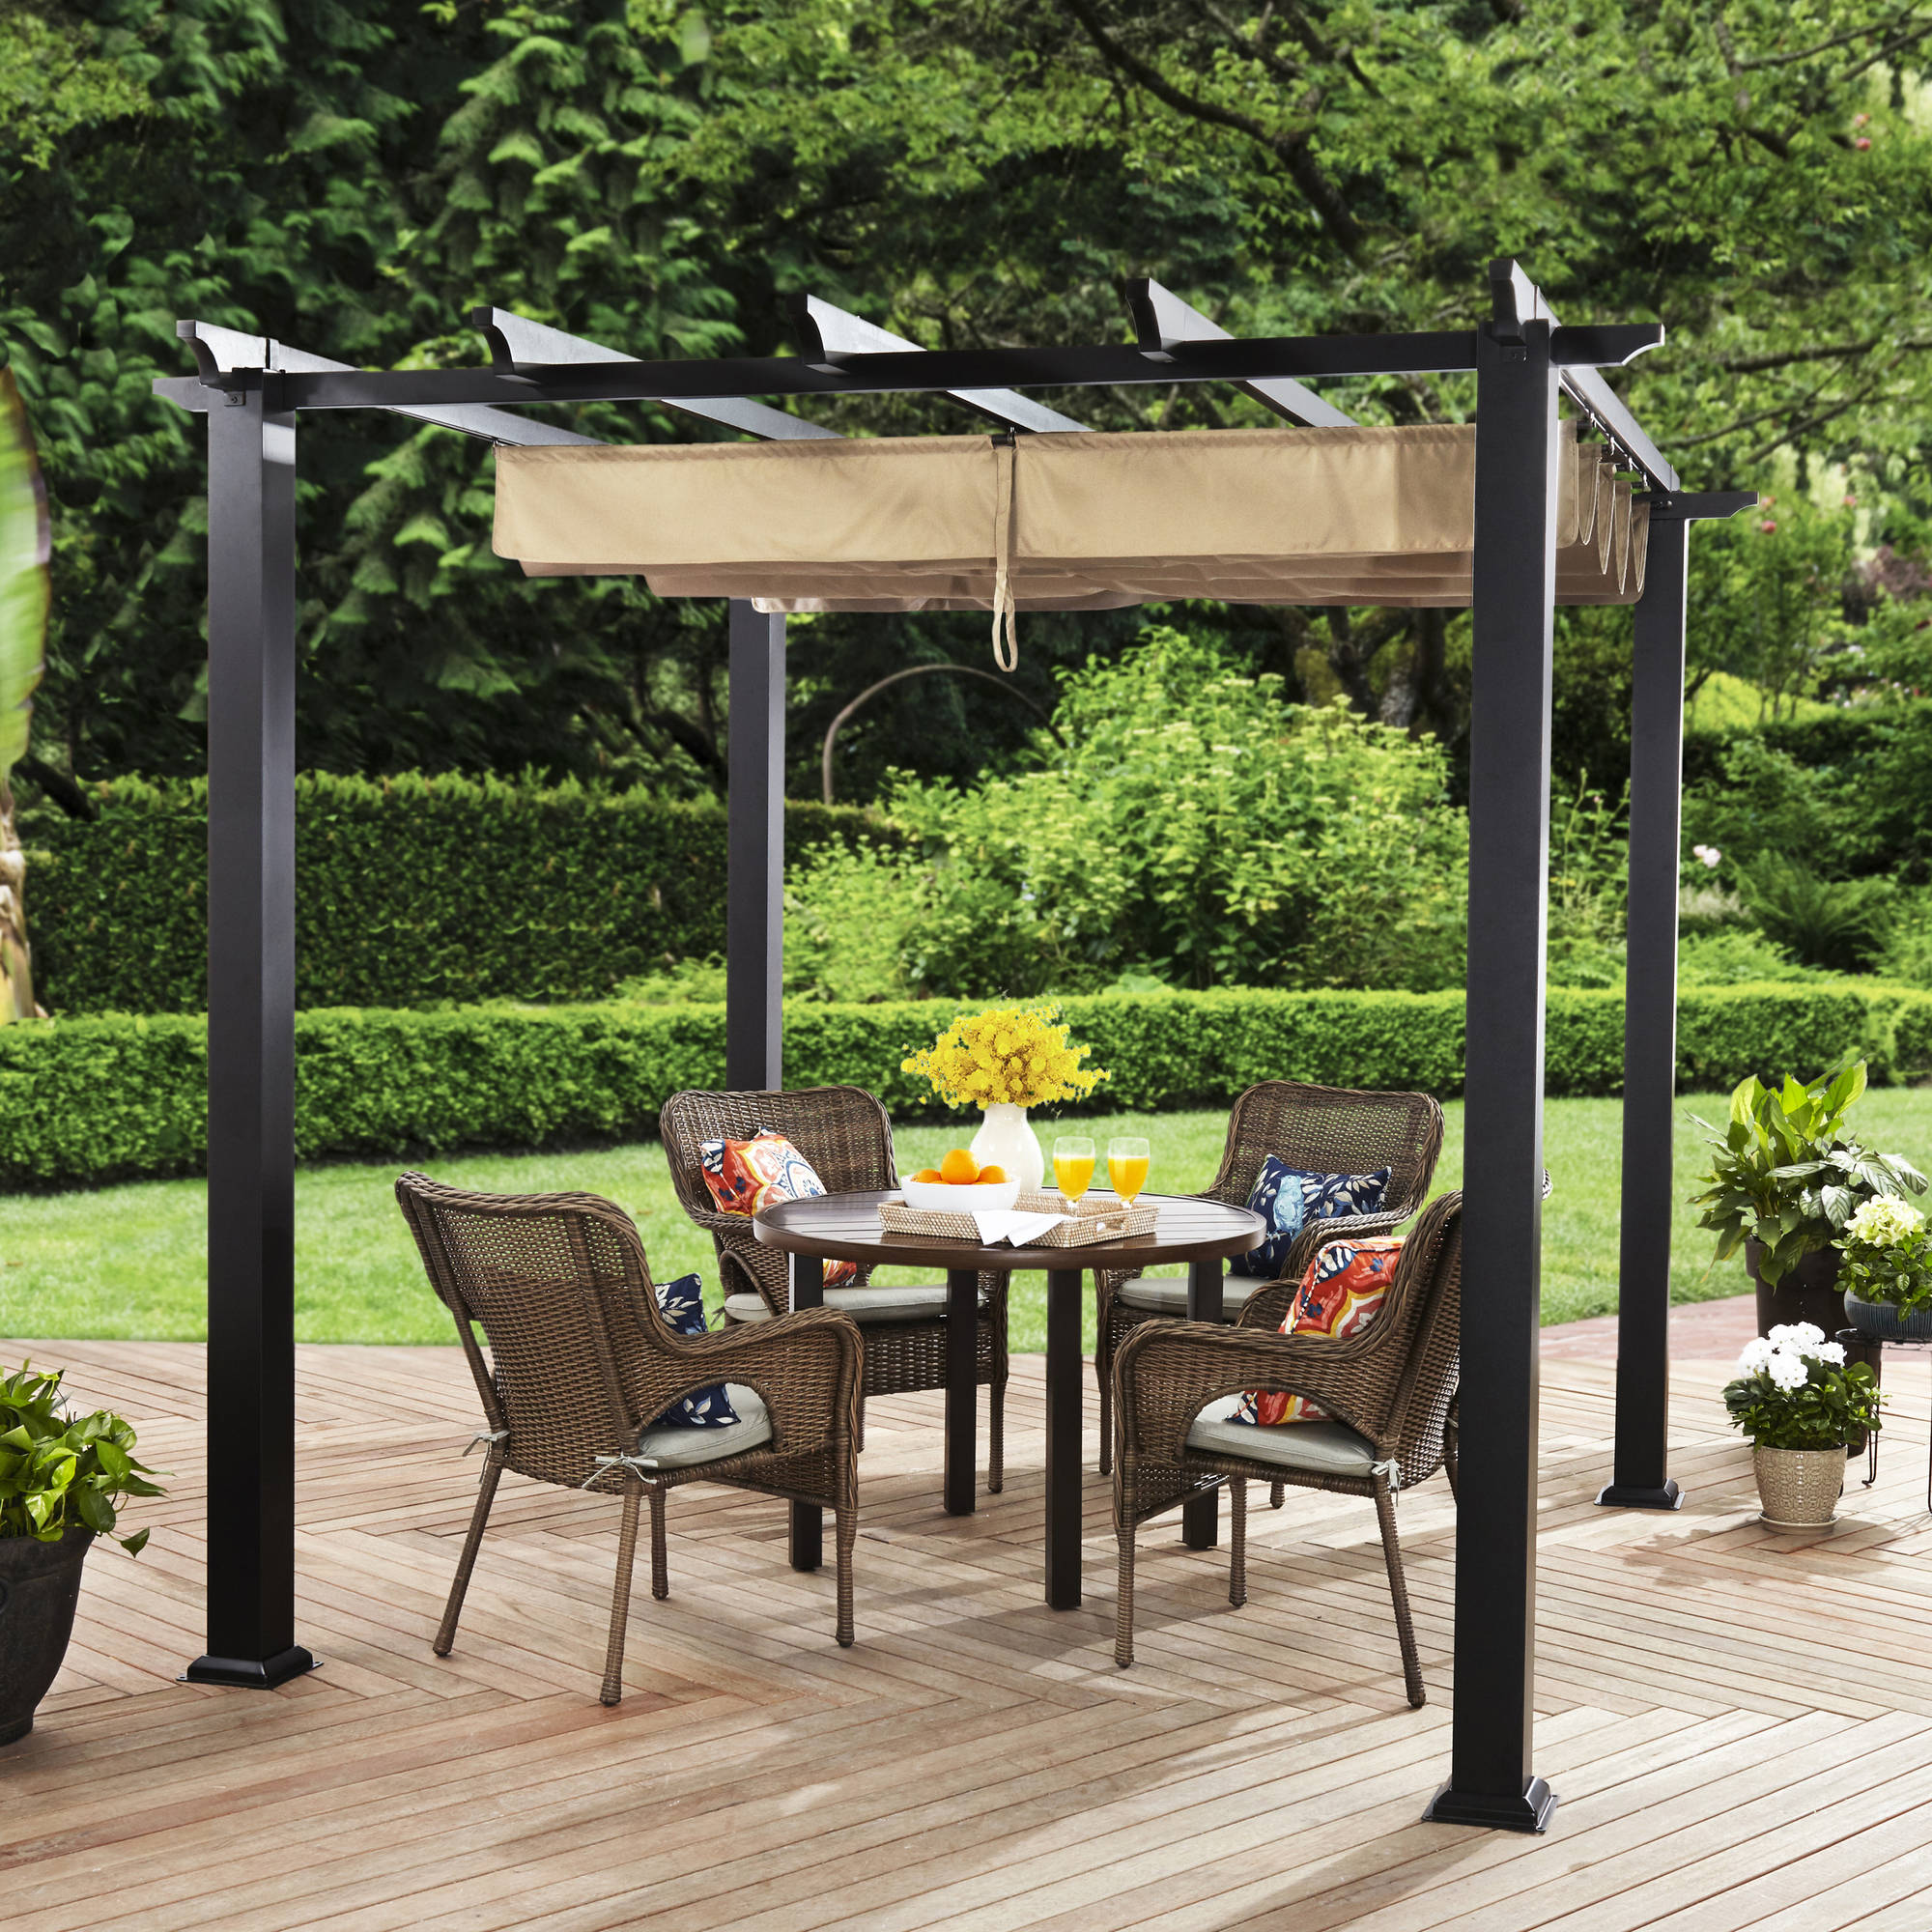 Better Homes u0026 Gardens Meritmoor Aluminum/Steel Pergola with Single-Finish 9u0027 x 9u0027 Black - Walmart.com : pergola on patio - thejasonspencertrust.org